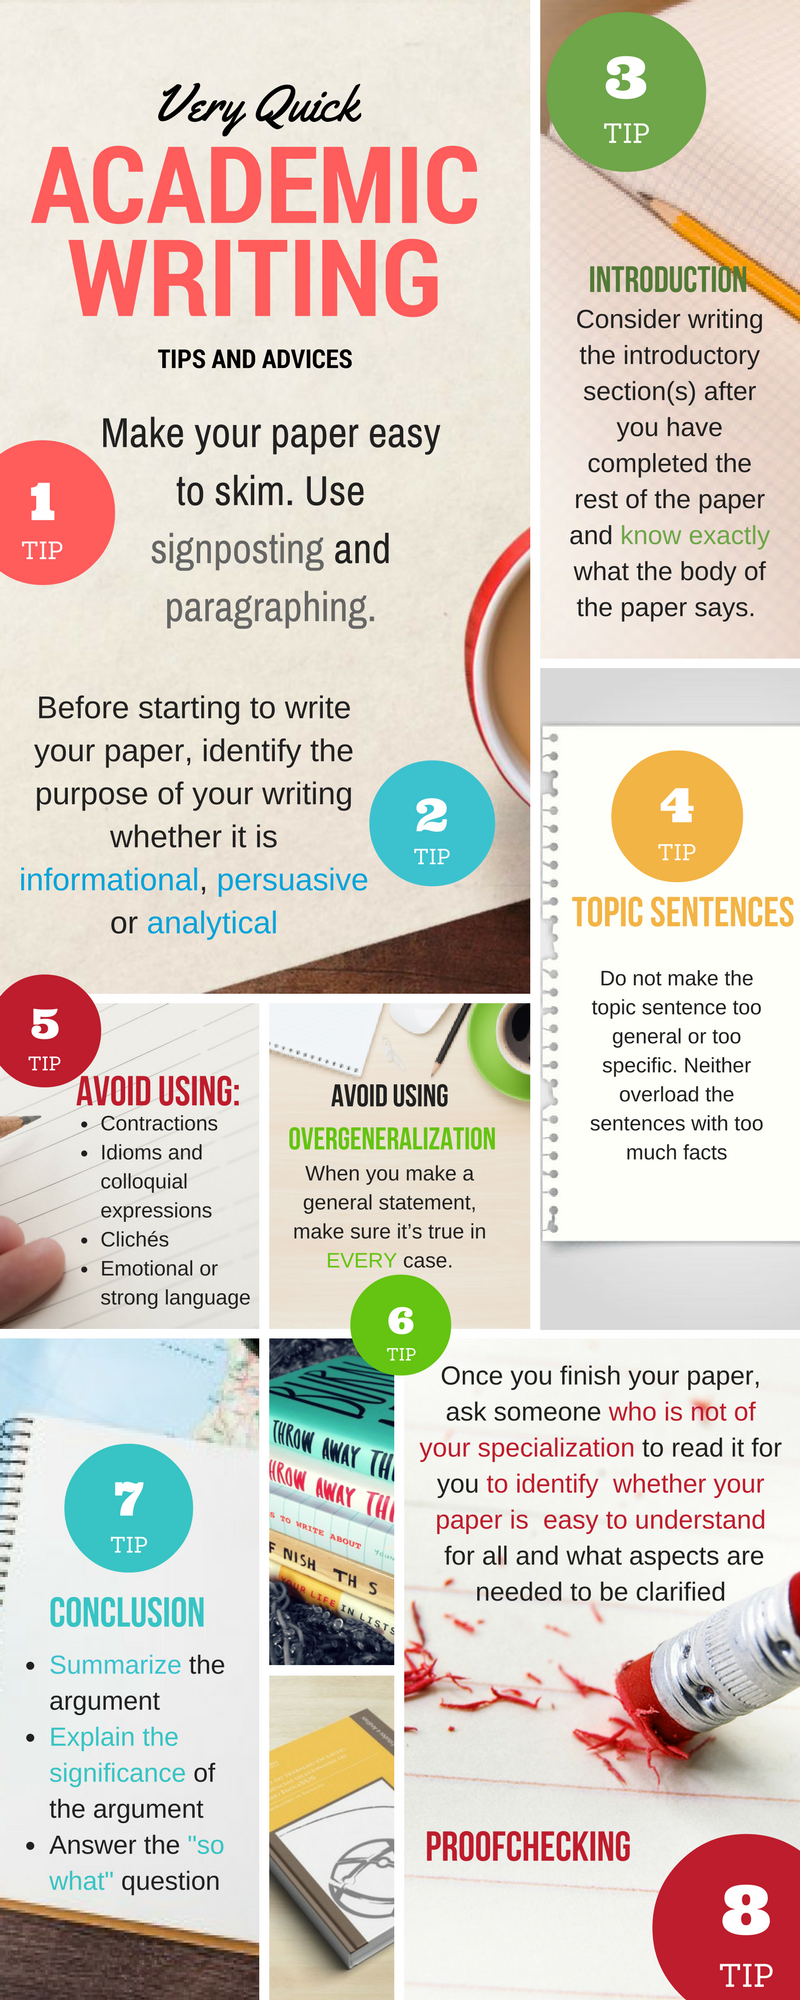 Very Quick Academic Writing Tips and Advices